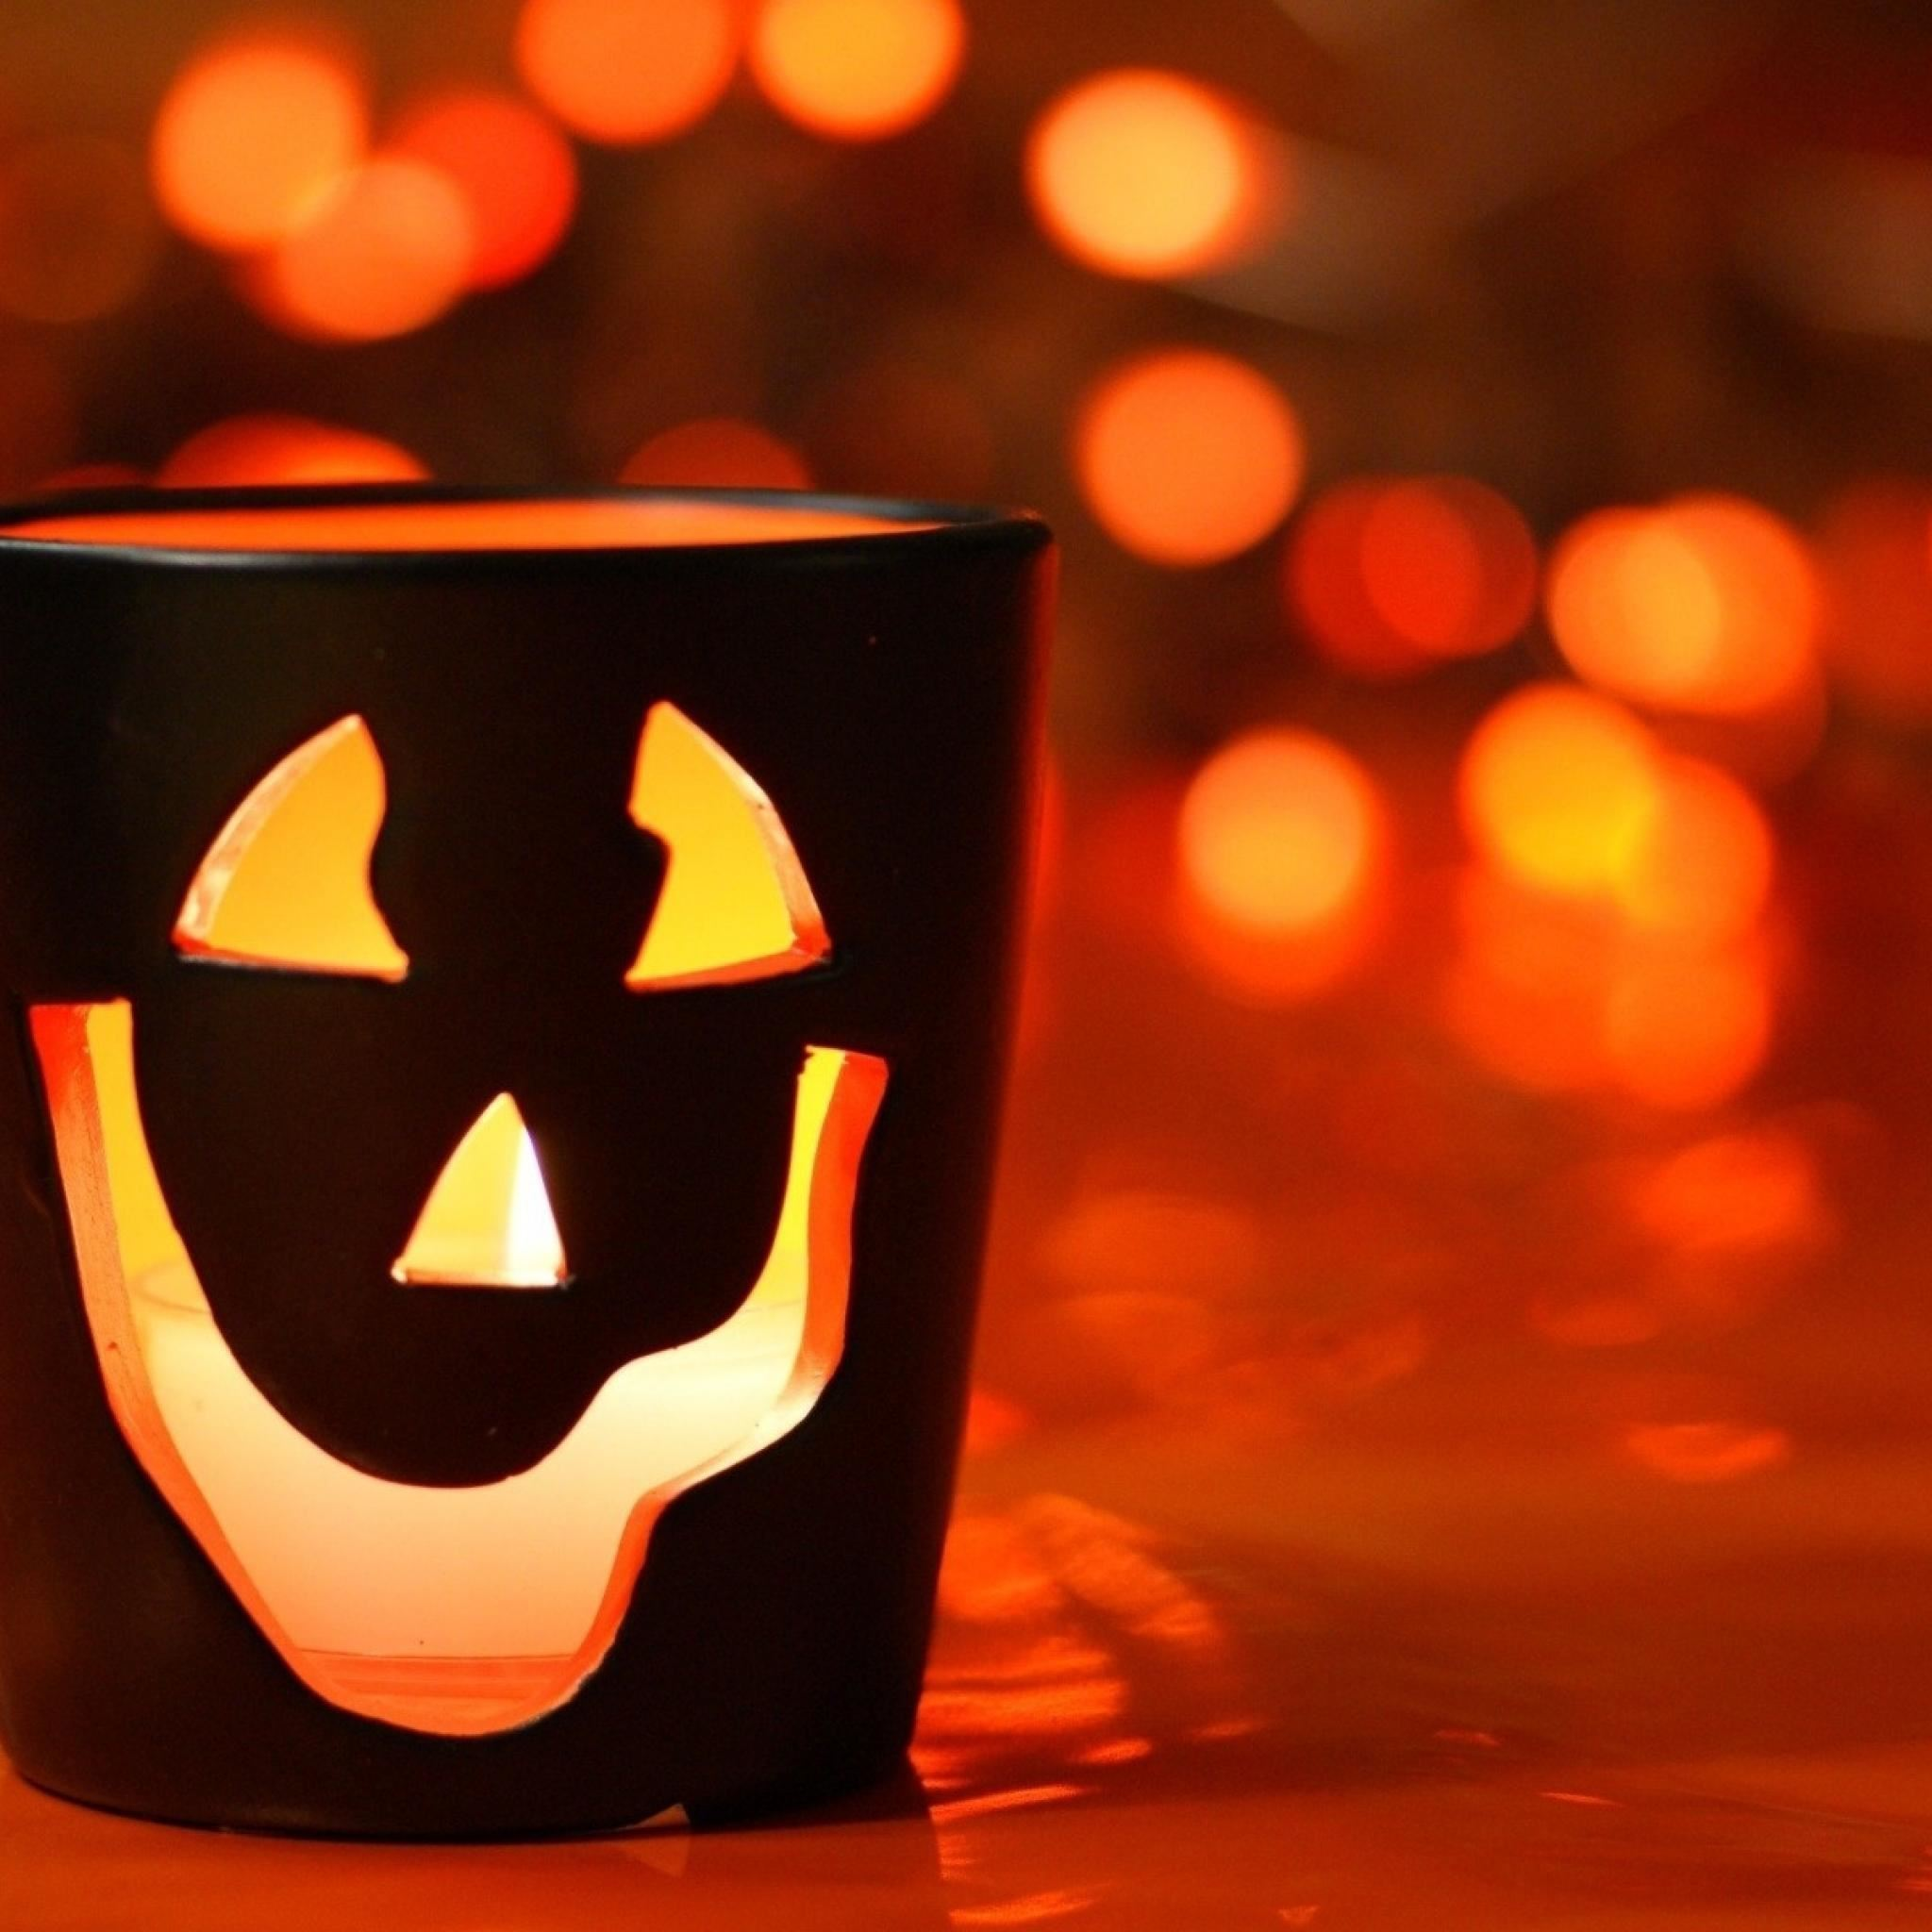 Glass Smile Halloween Blur Ghost Holidays Ipad Air Wallpapers Free